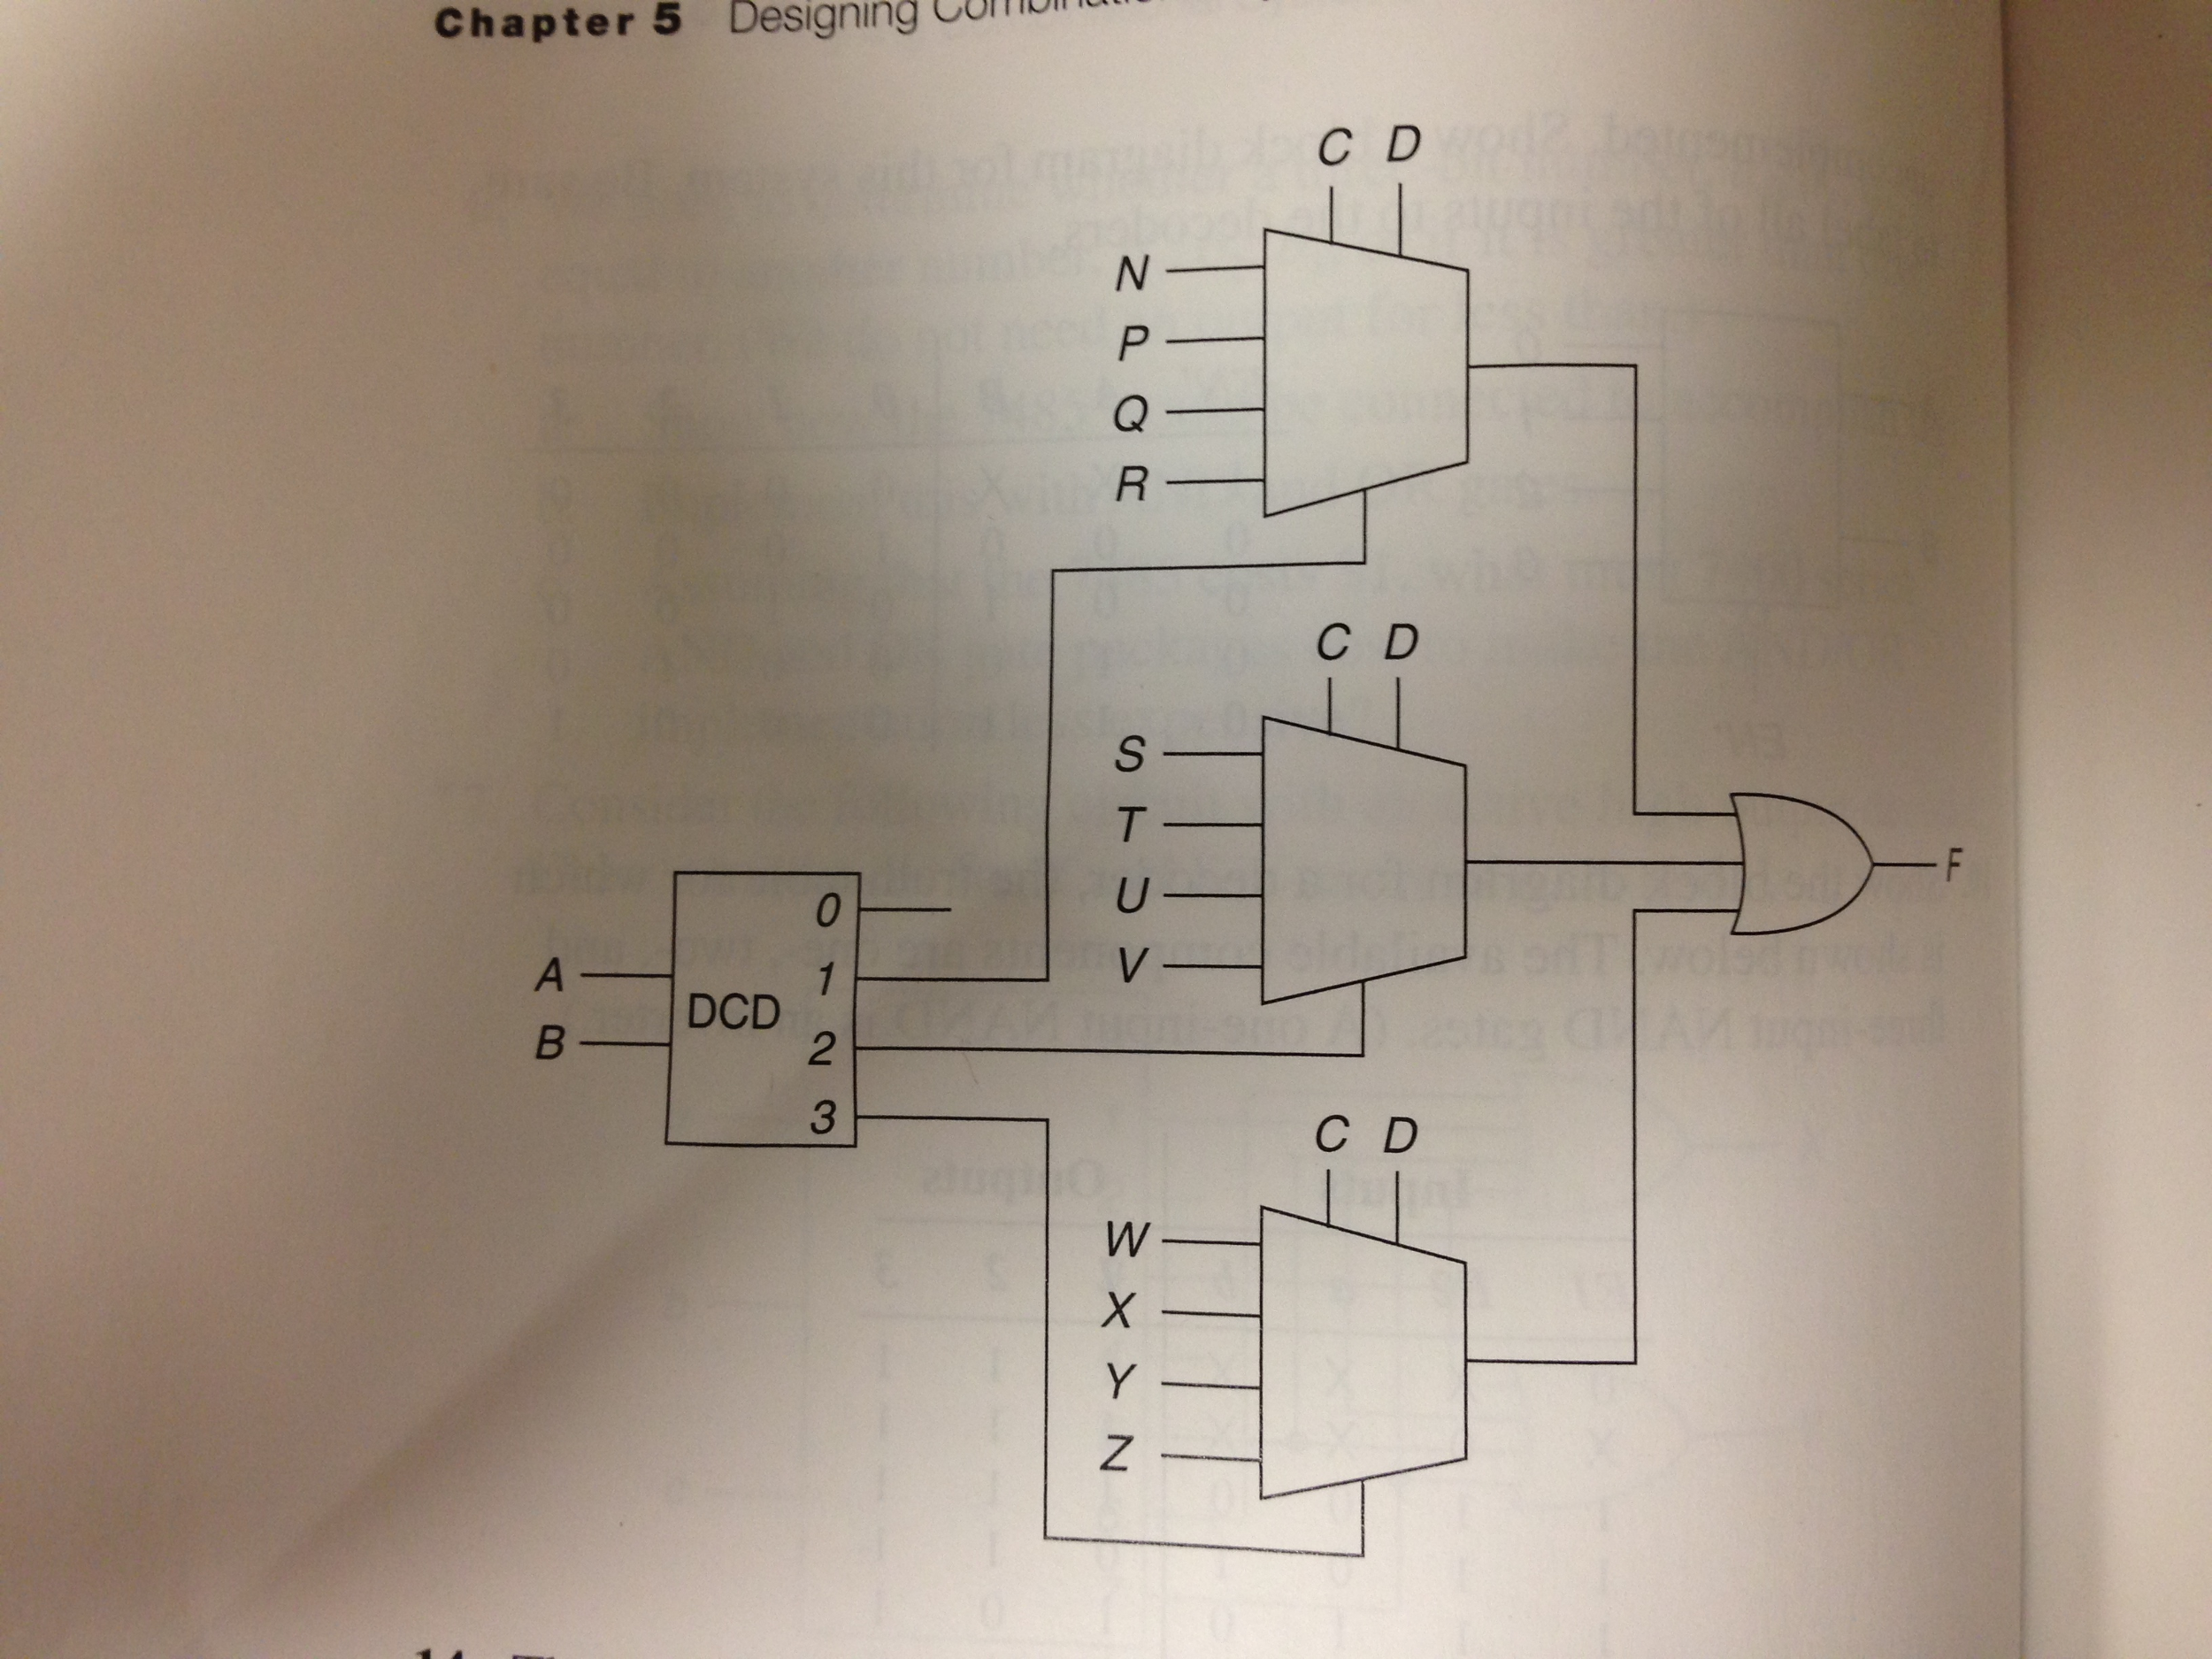 1. Design a circuit to multiply two 2-bit numbers